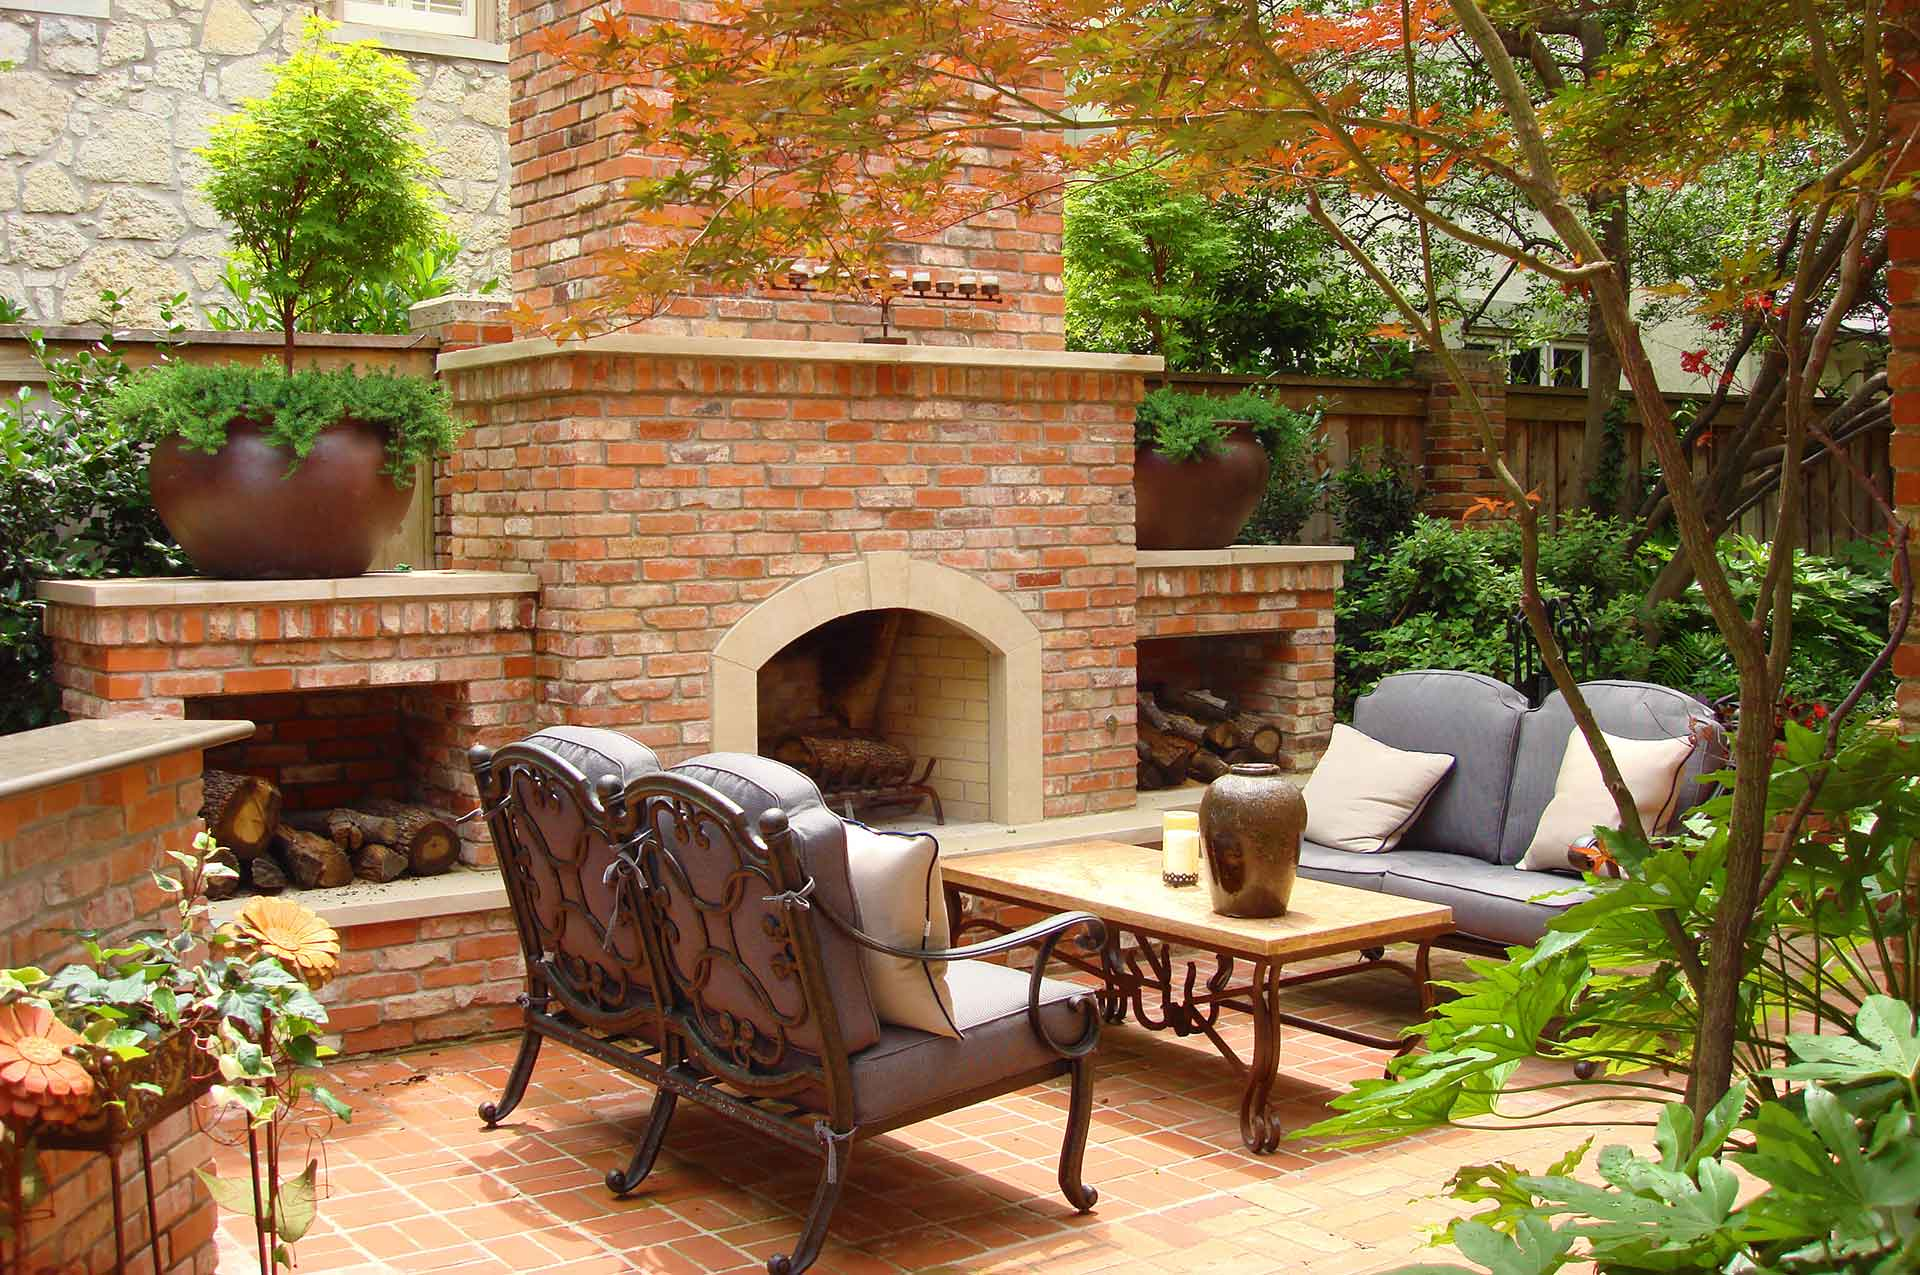 Southern Land Design Landscaped Outdoor Fireplace Slide 1920 x 1275